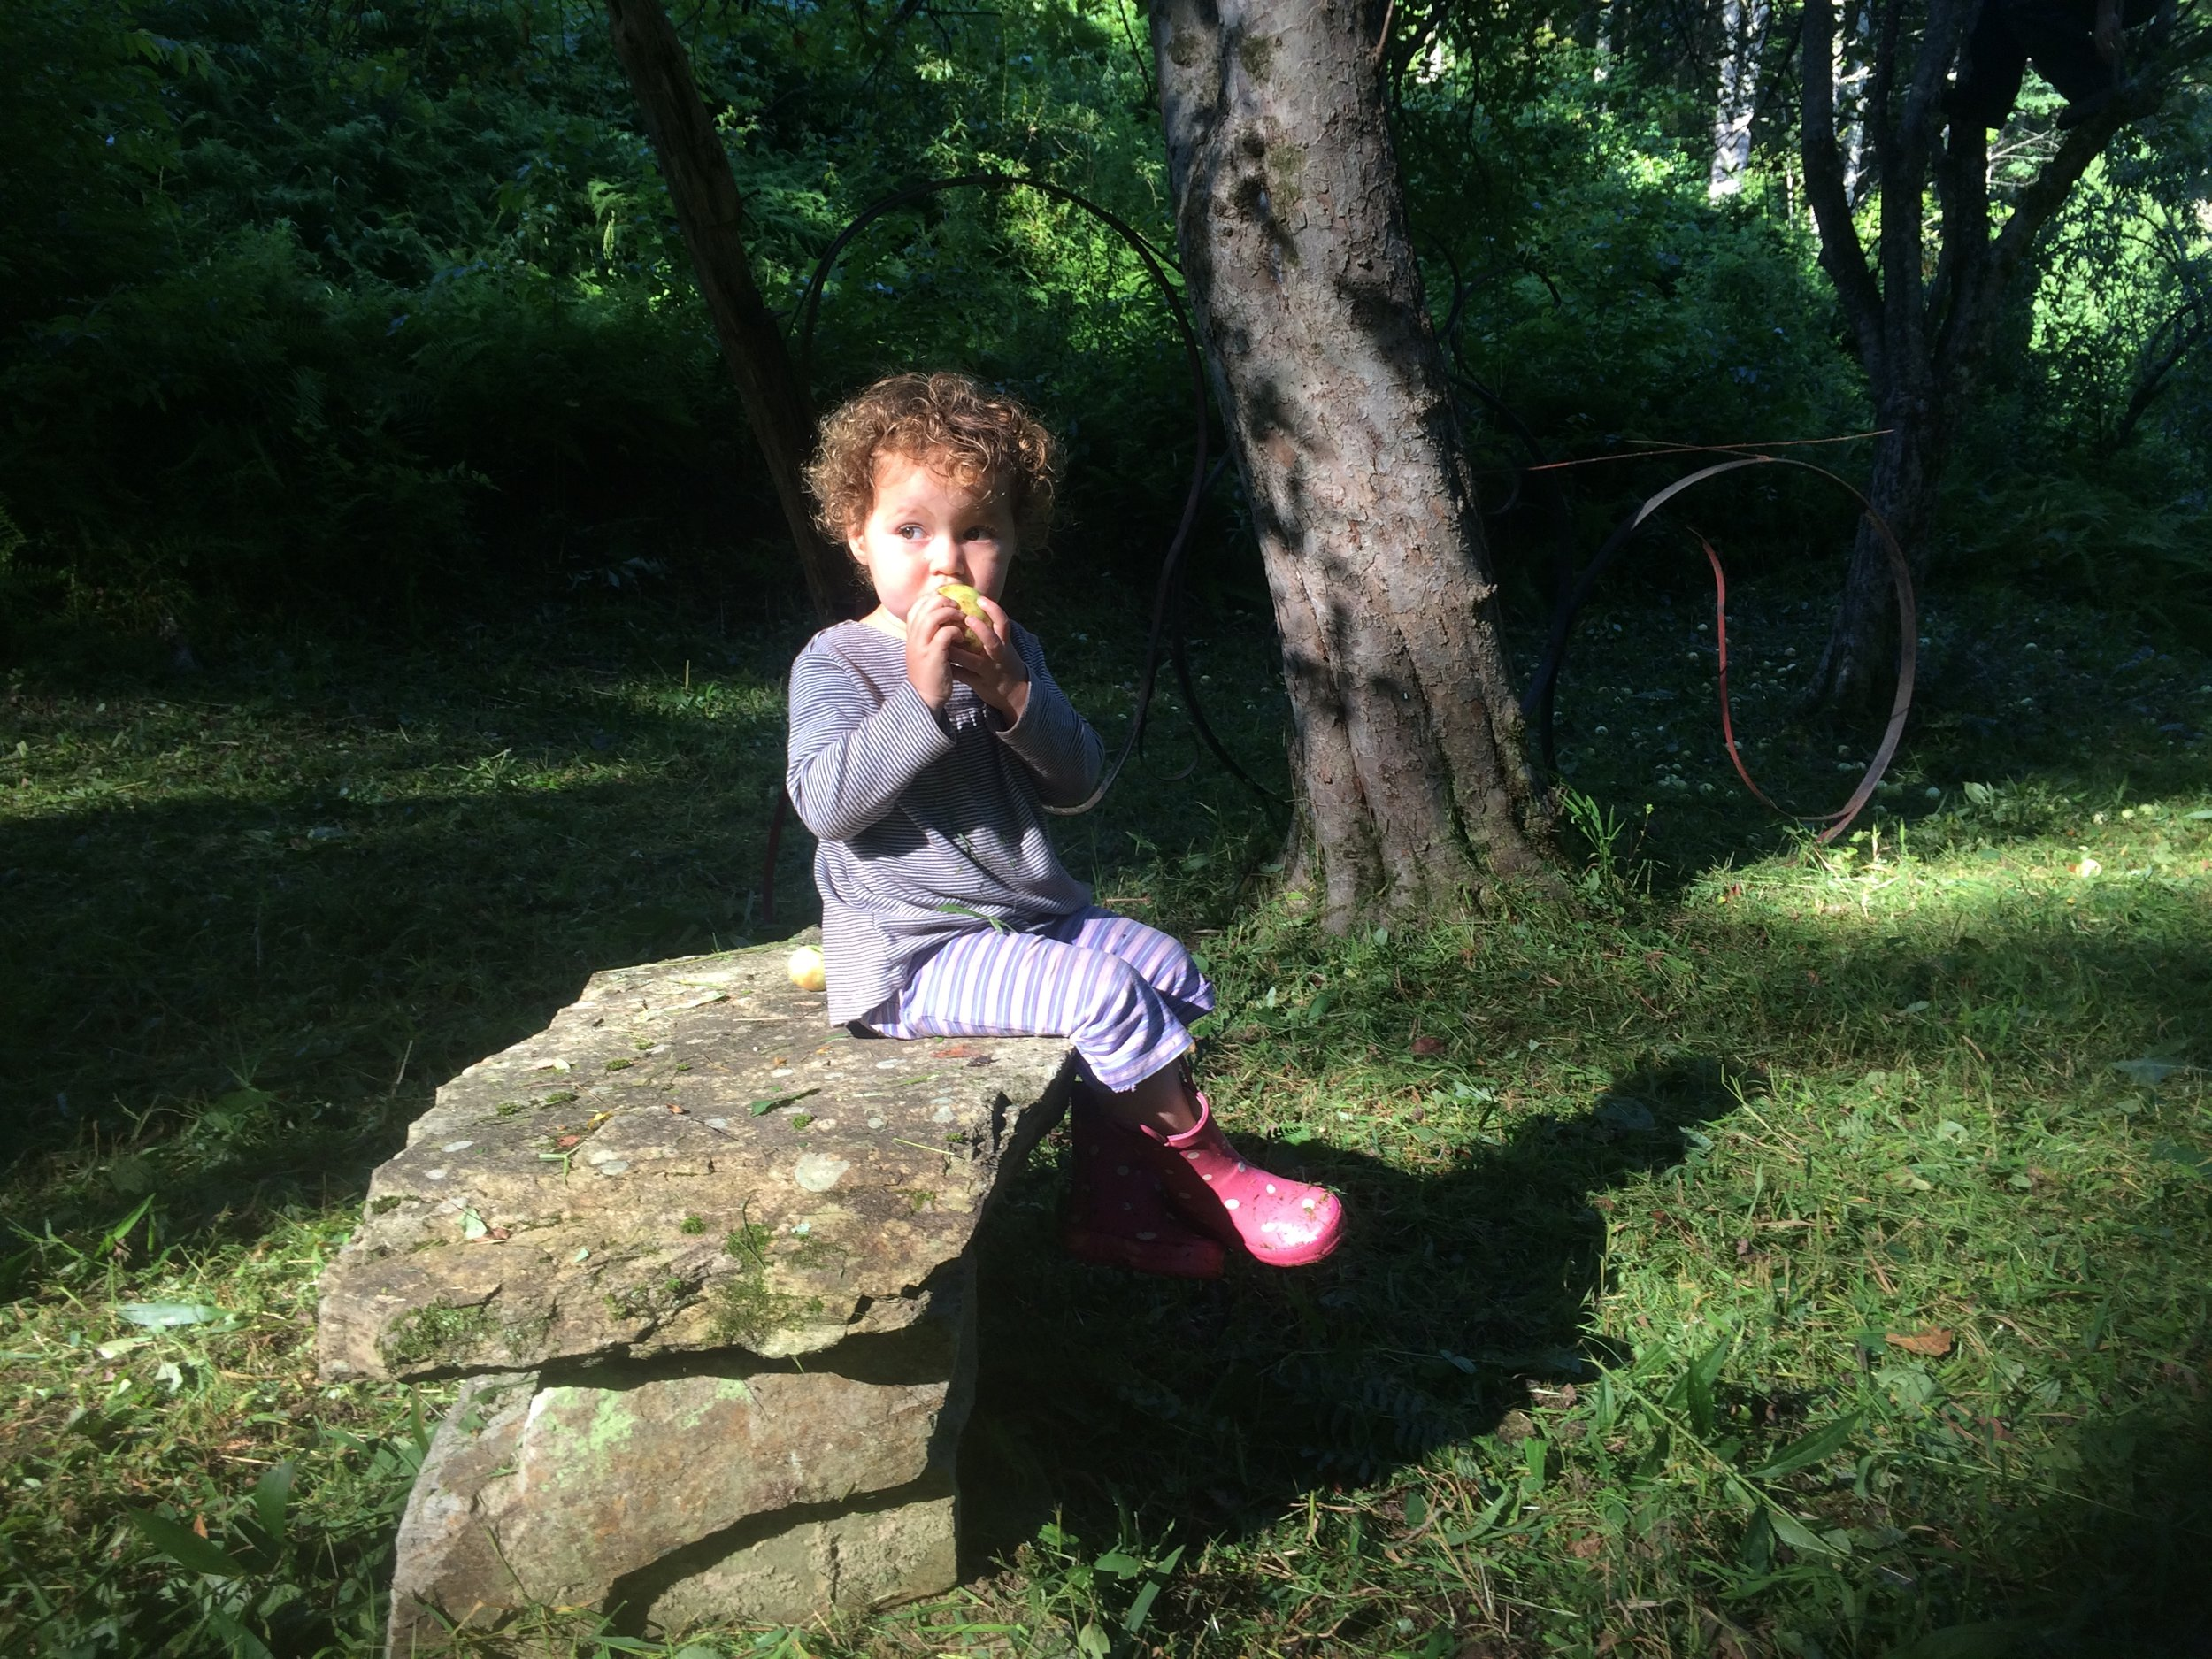 Our daughter Chloe at the base of an apple tree munching on a fresh apple